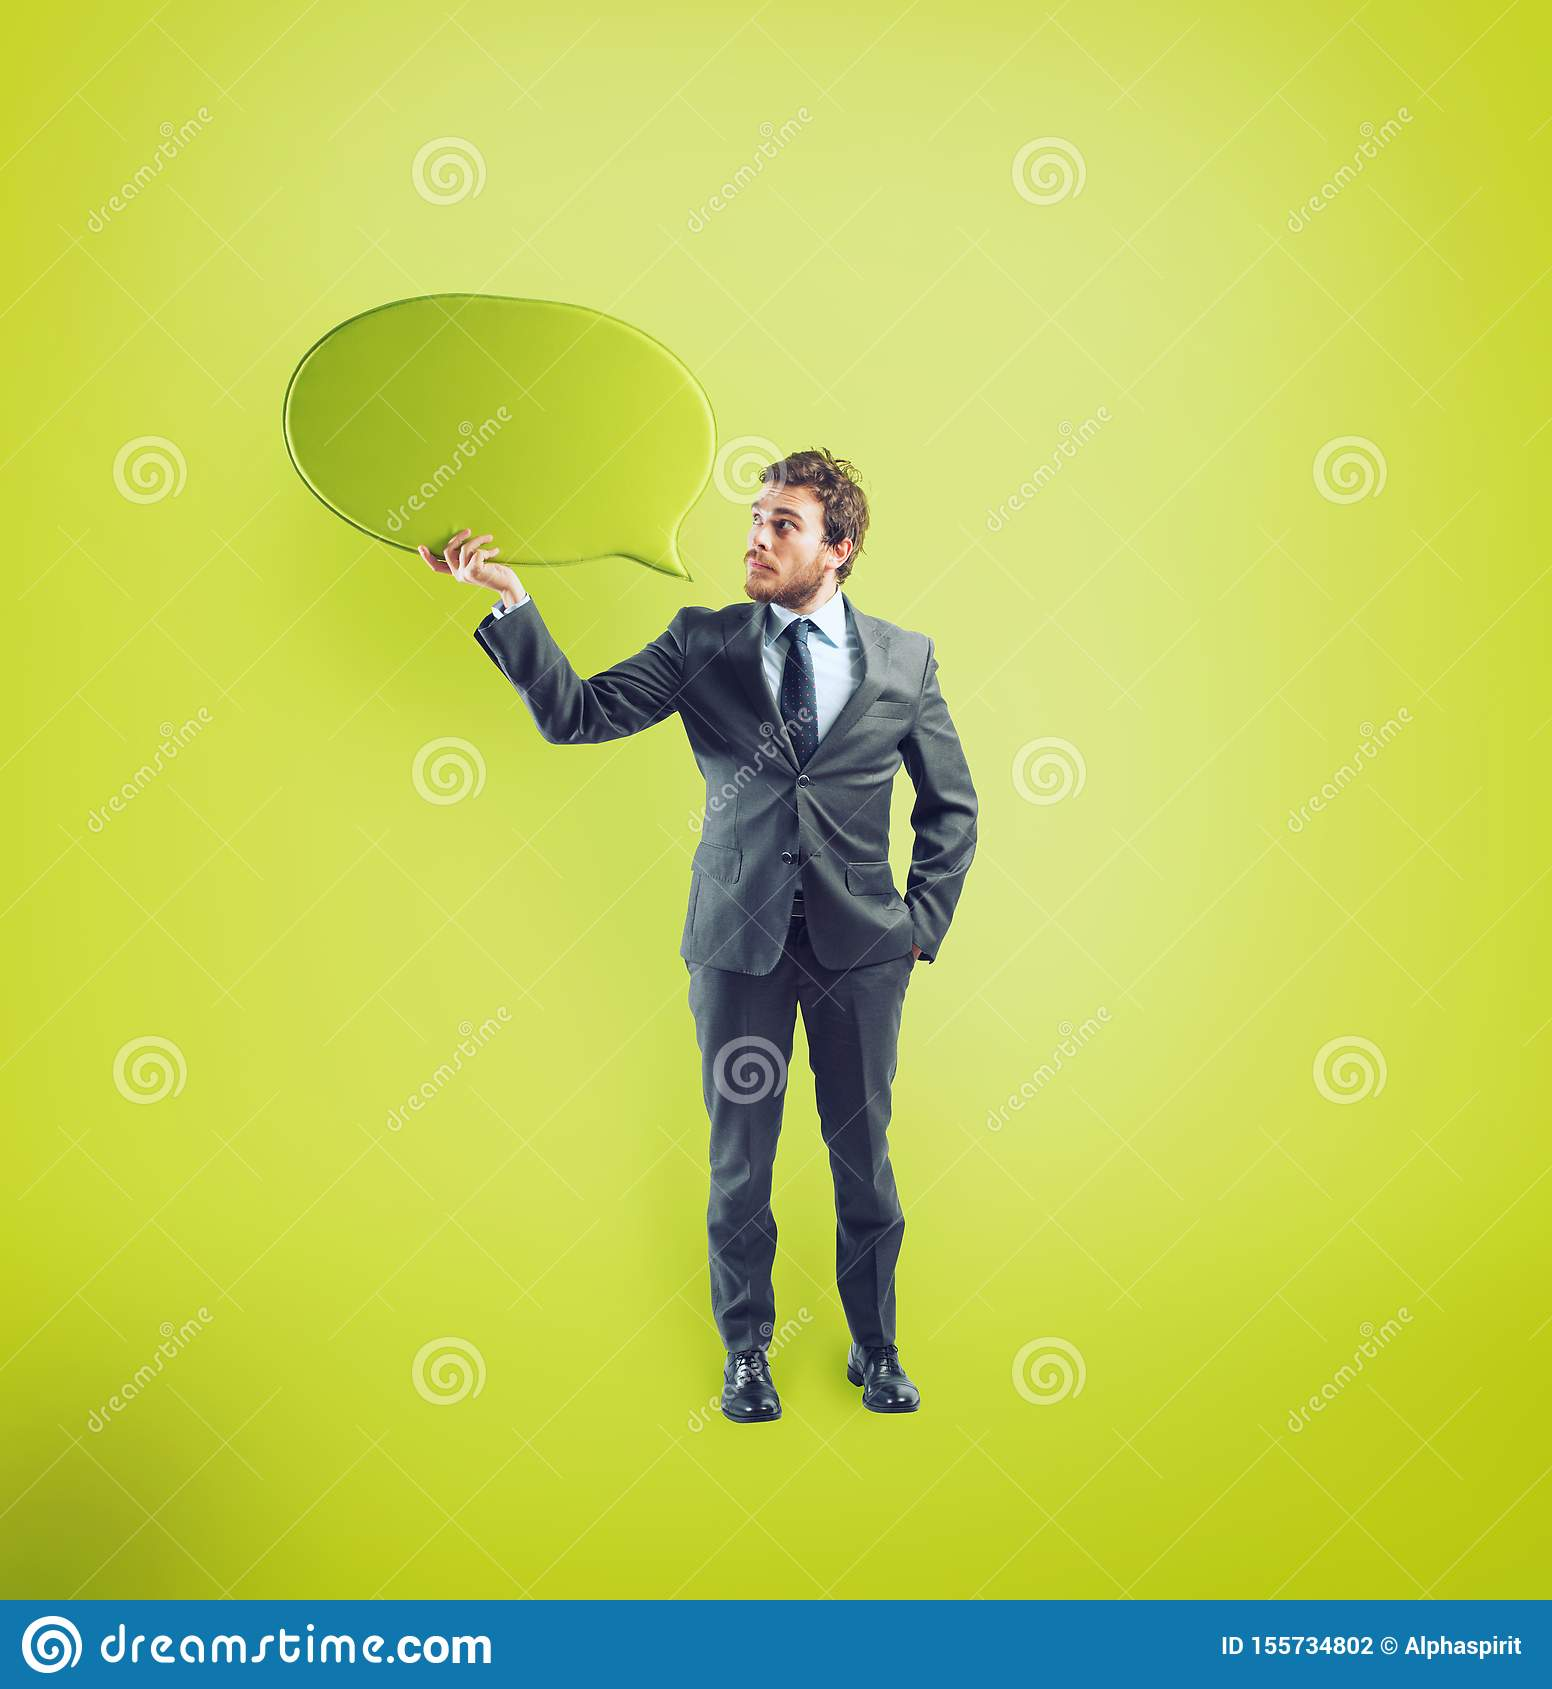 Businessman has something to say in a speech bubble